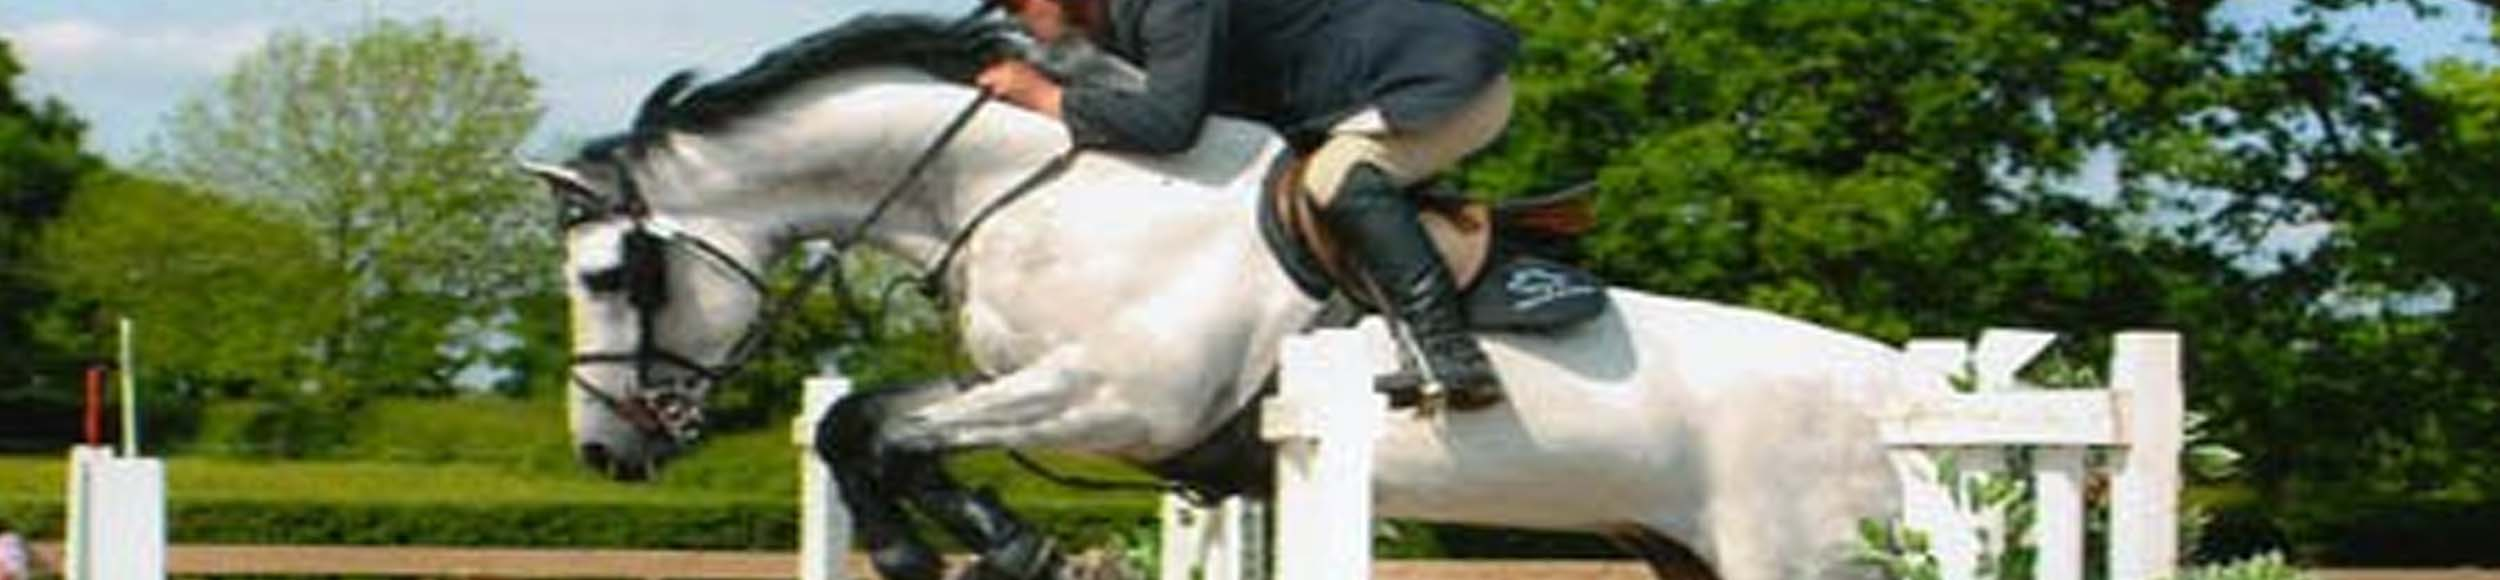 Sport Horses For Sale - West Sussex